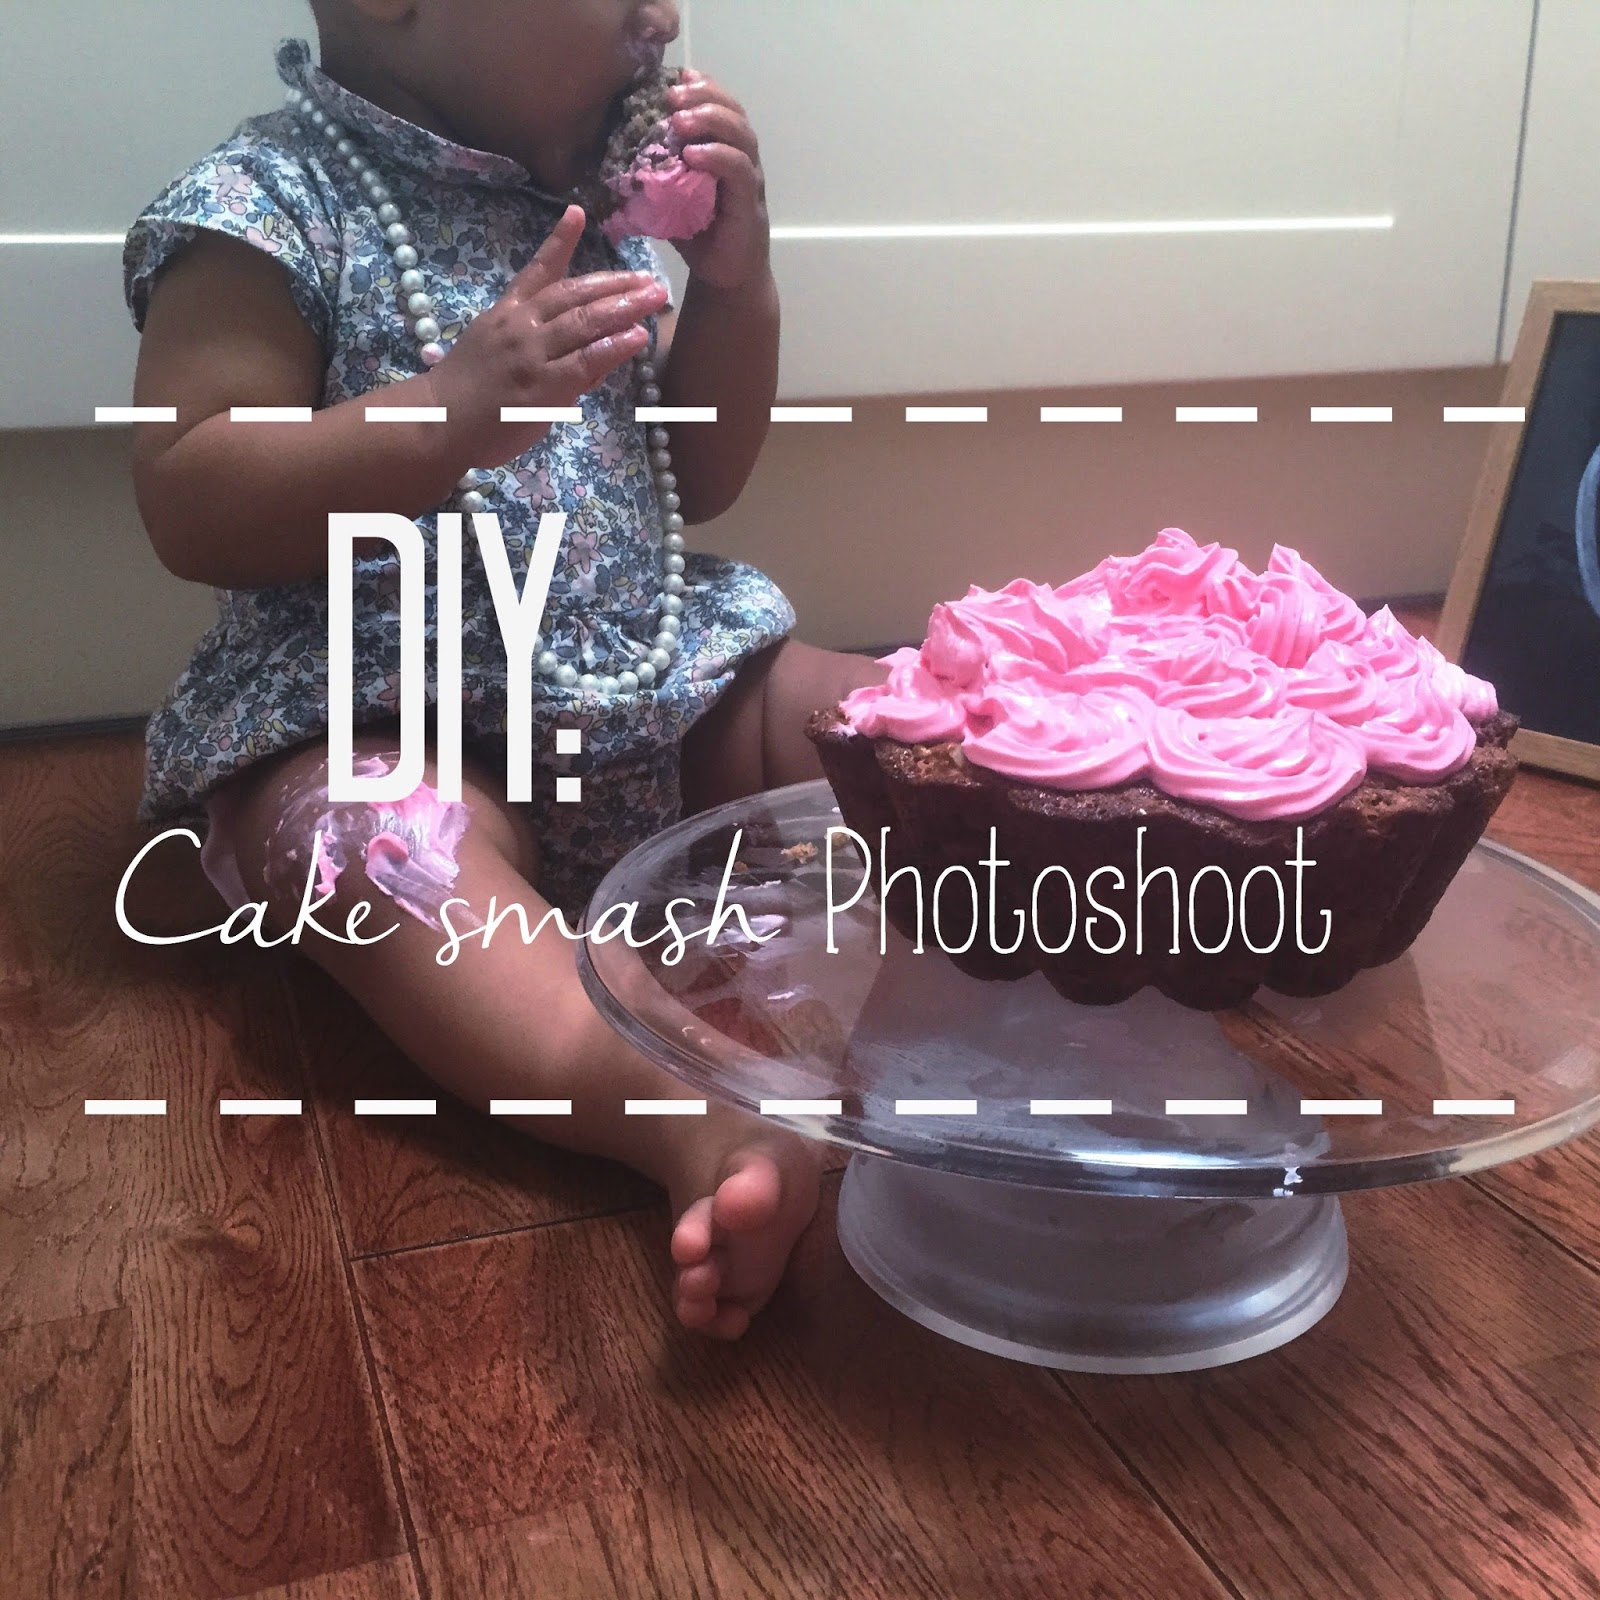 Diy First Birthday Cake Smash Photo Shoot